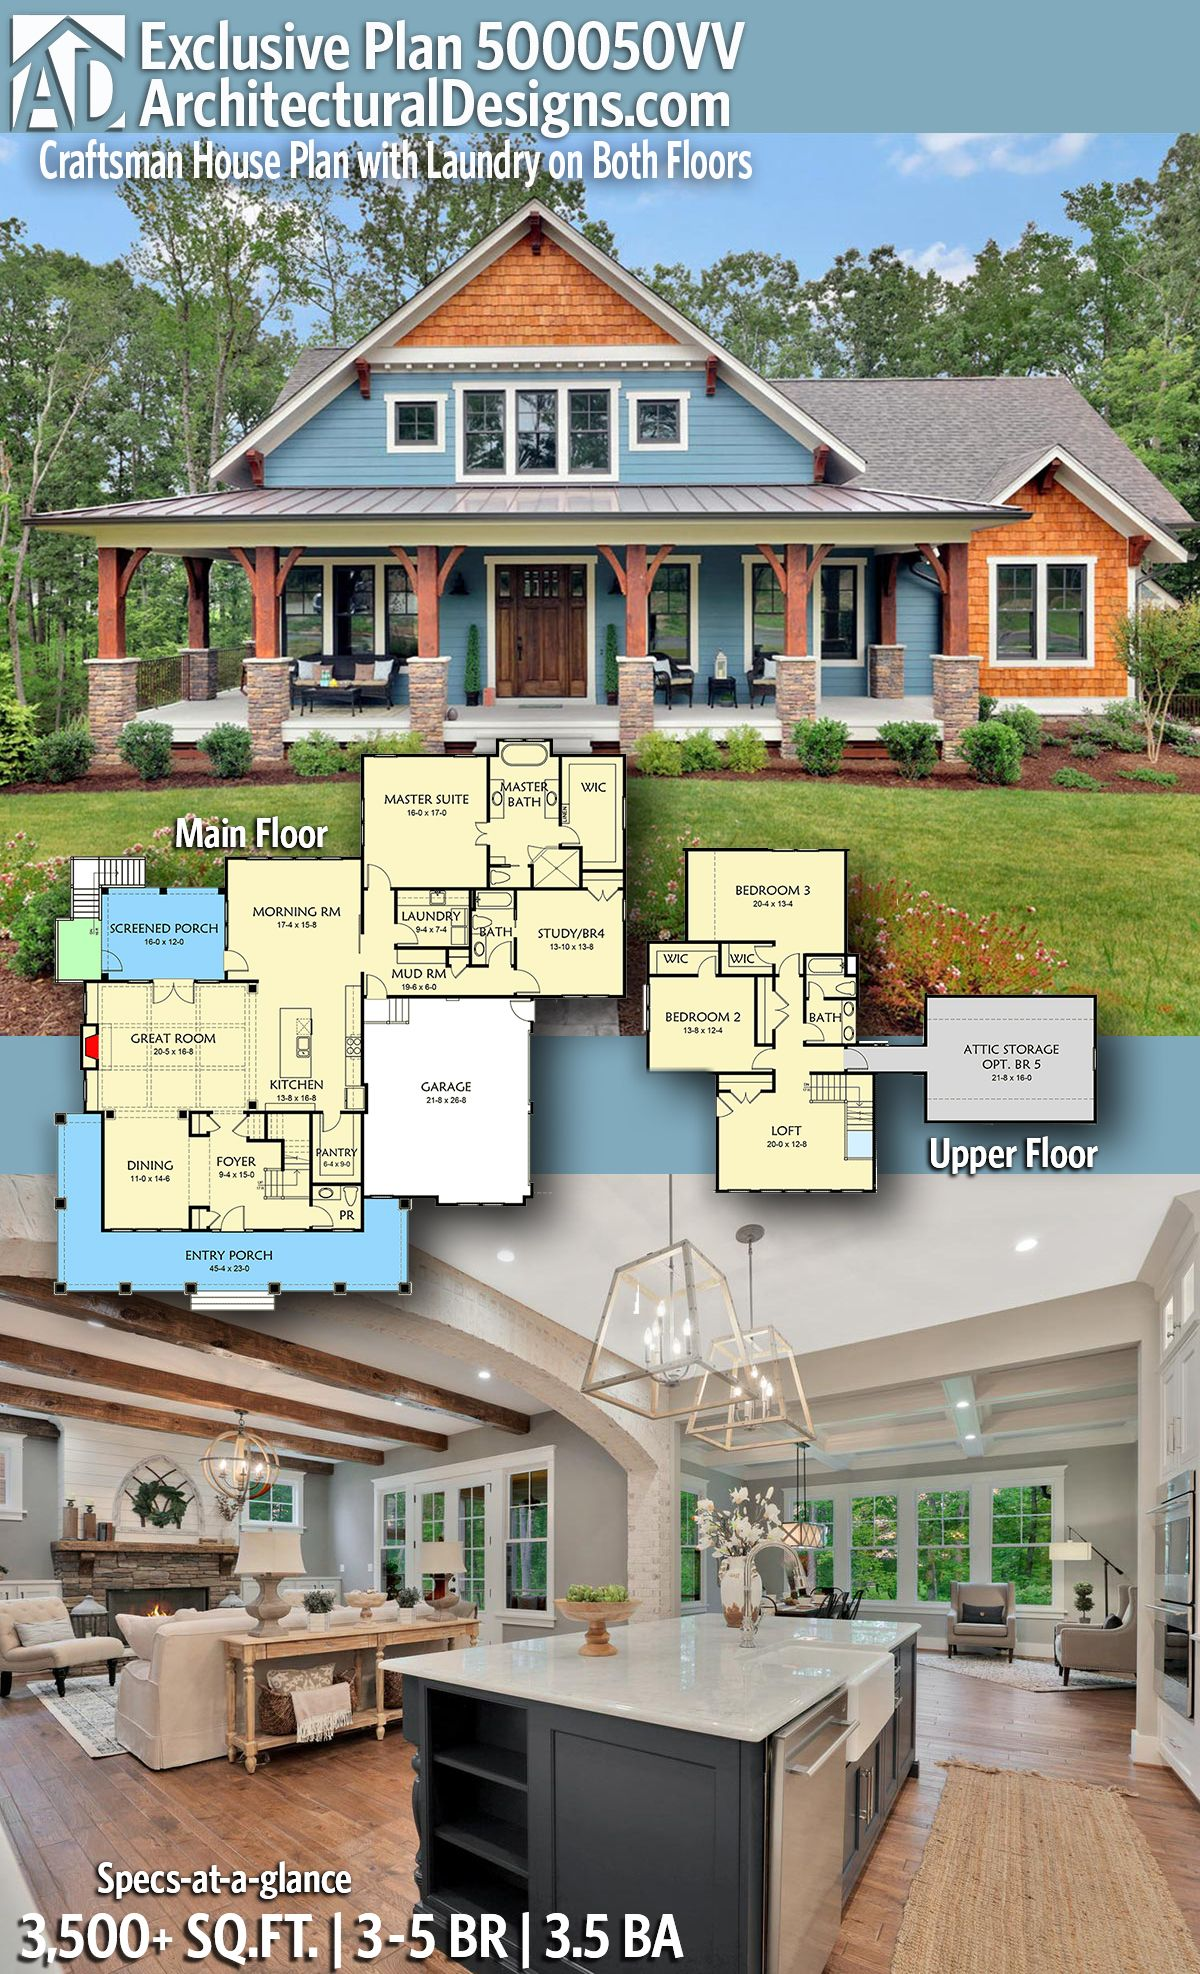 Introducing Architectural Designs Exclusive Country Craftsman Home